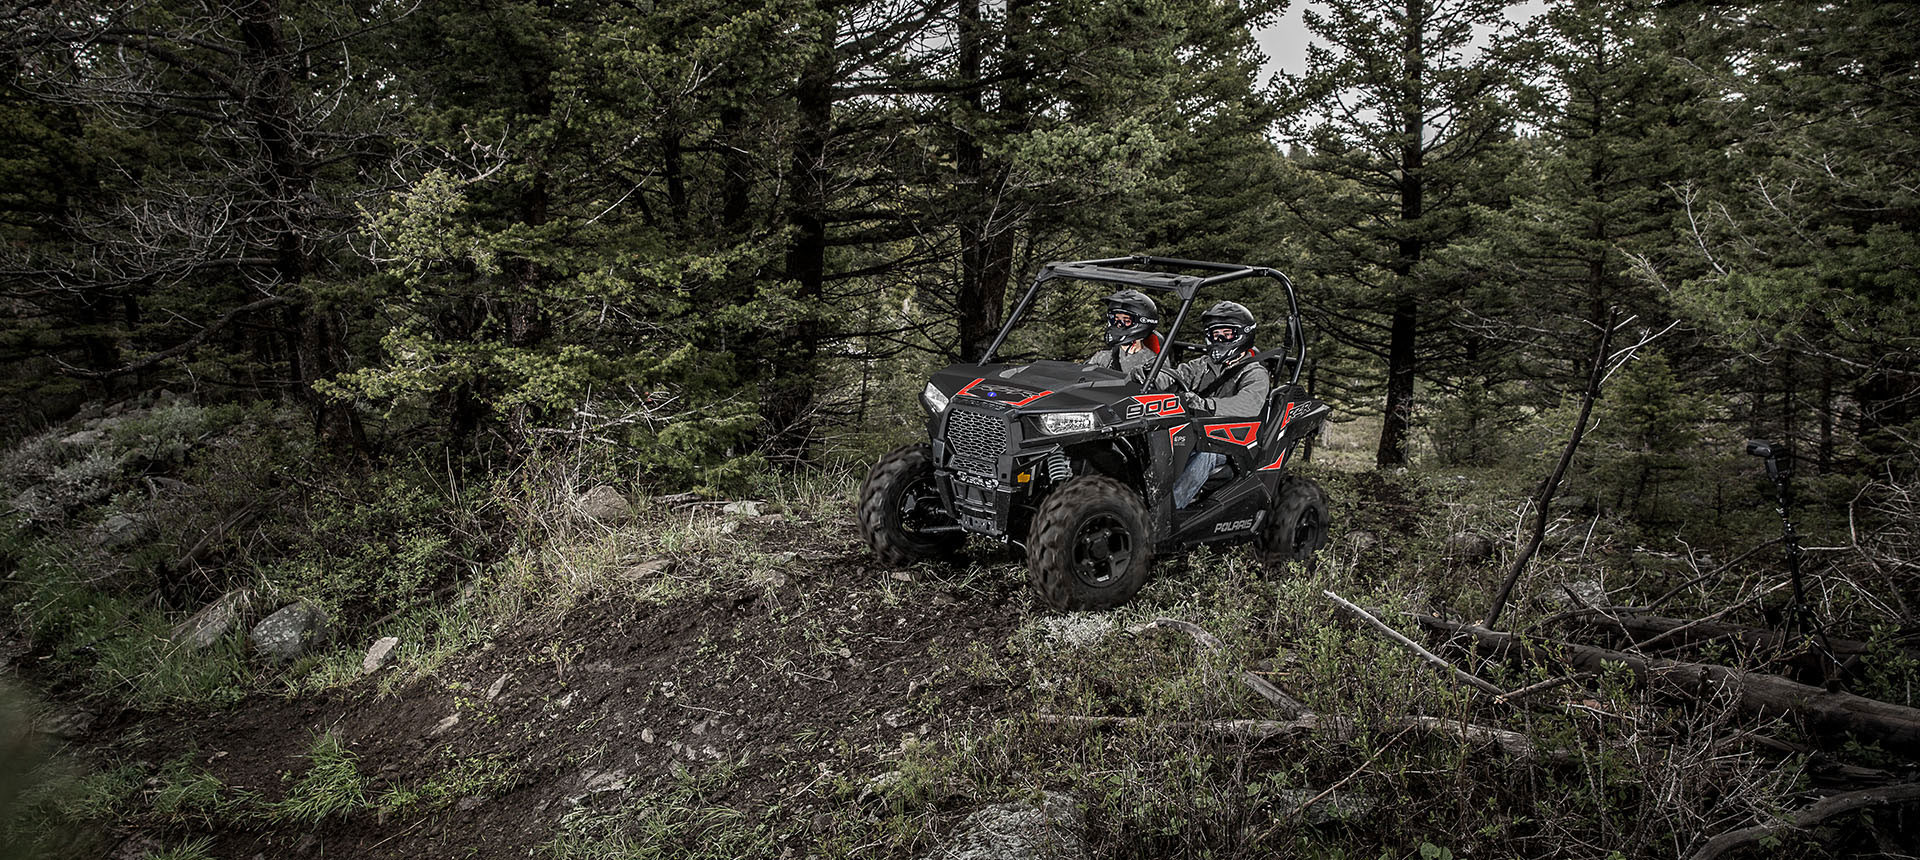 2020 RZR<sup>®</sup> Trail 900 Instagram image 6